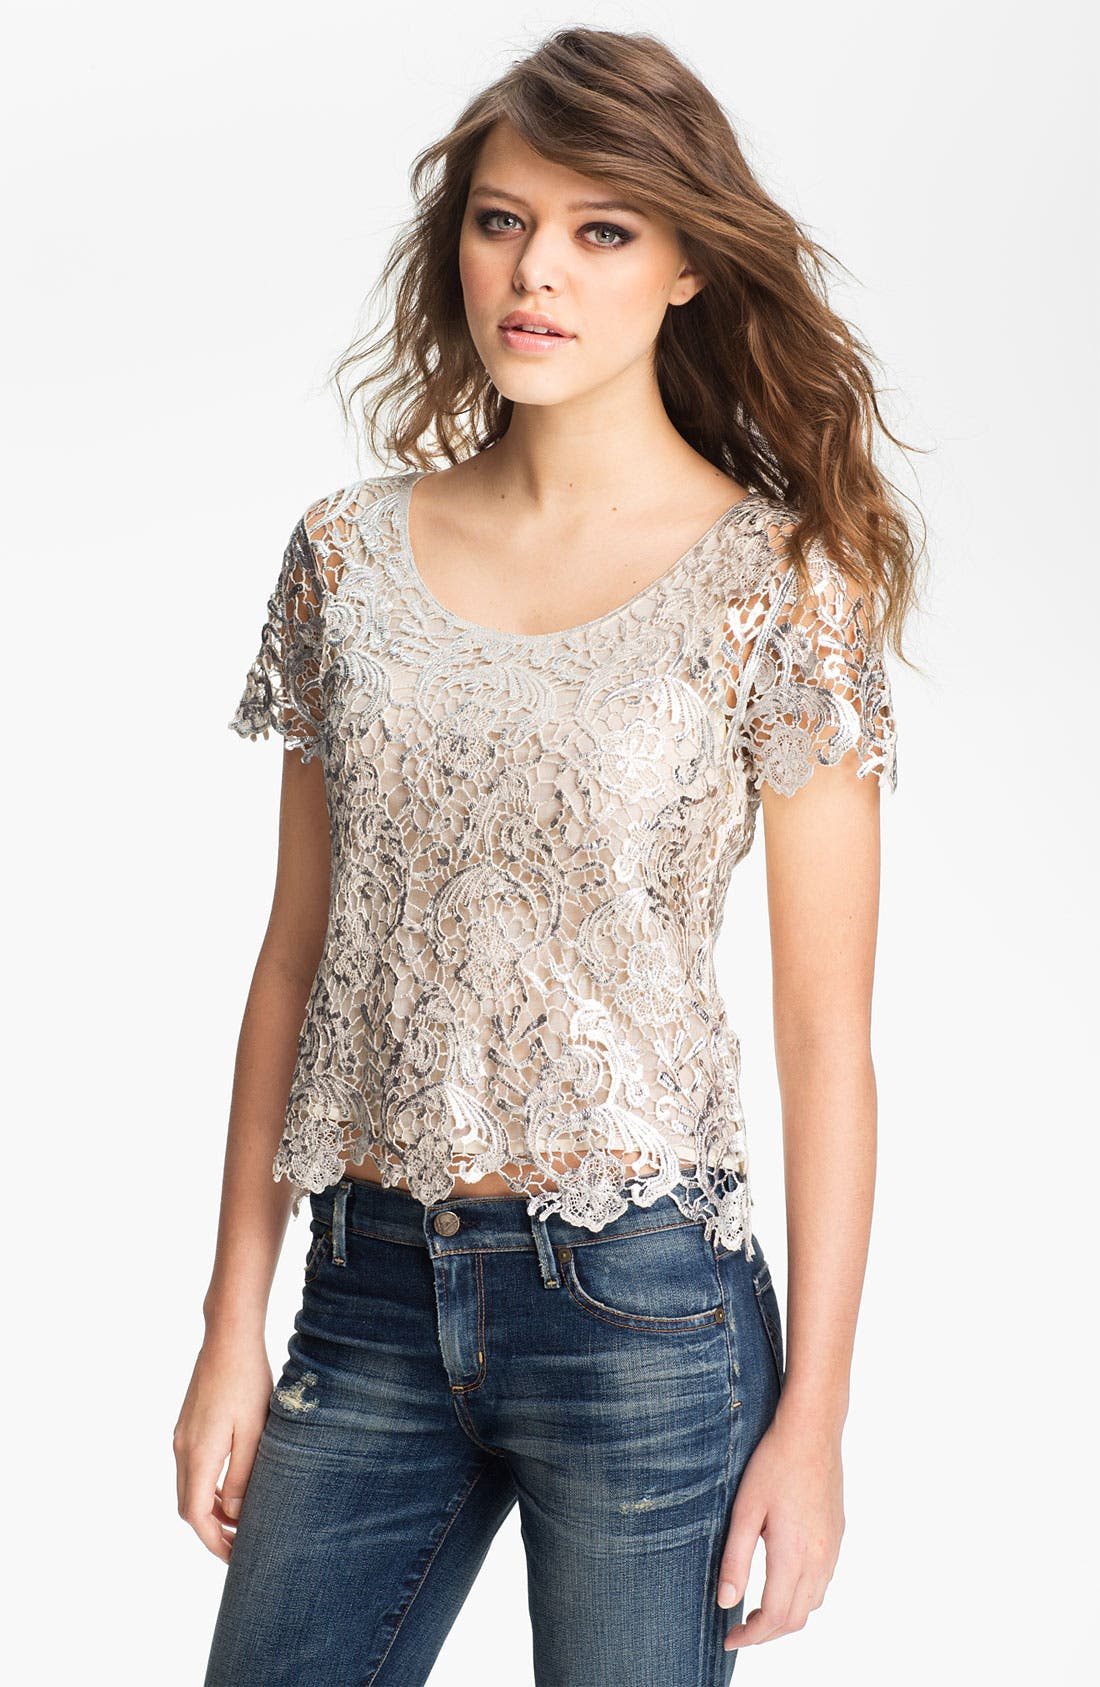 Alternate Image 1 Selected - GREYLIN Lace Metallic Brushed Lace Top